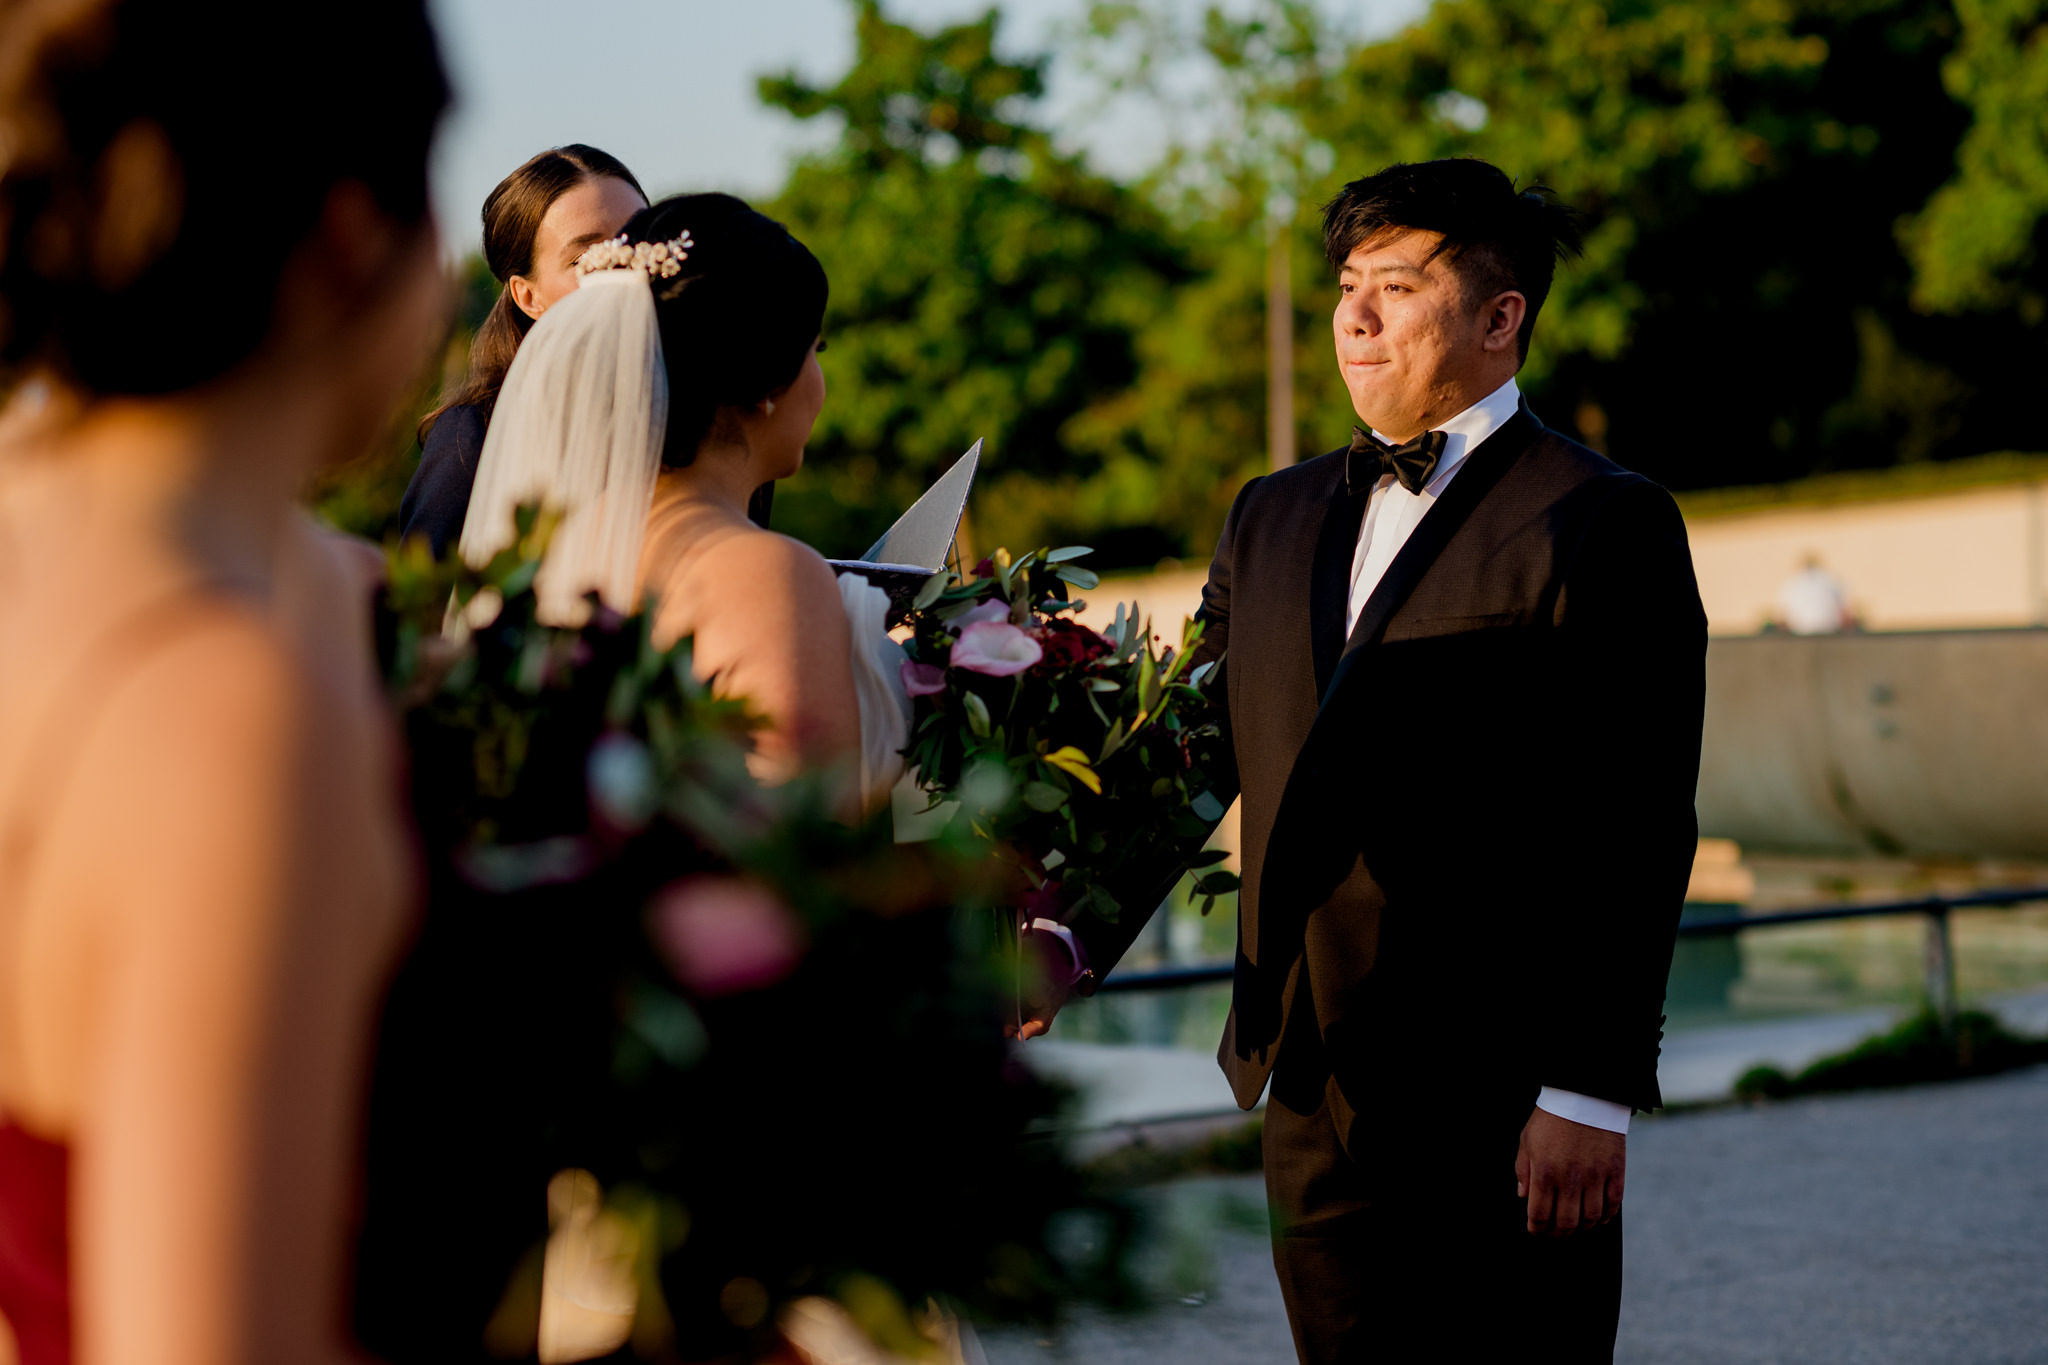 A groom bites his lip and holds back tears at his wedding.